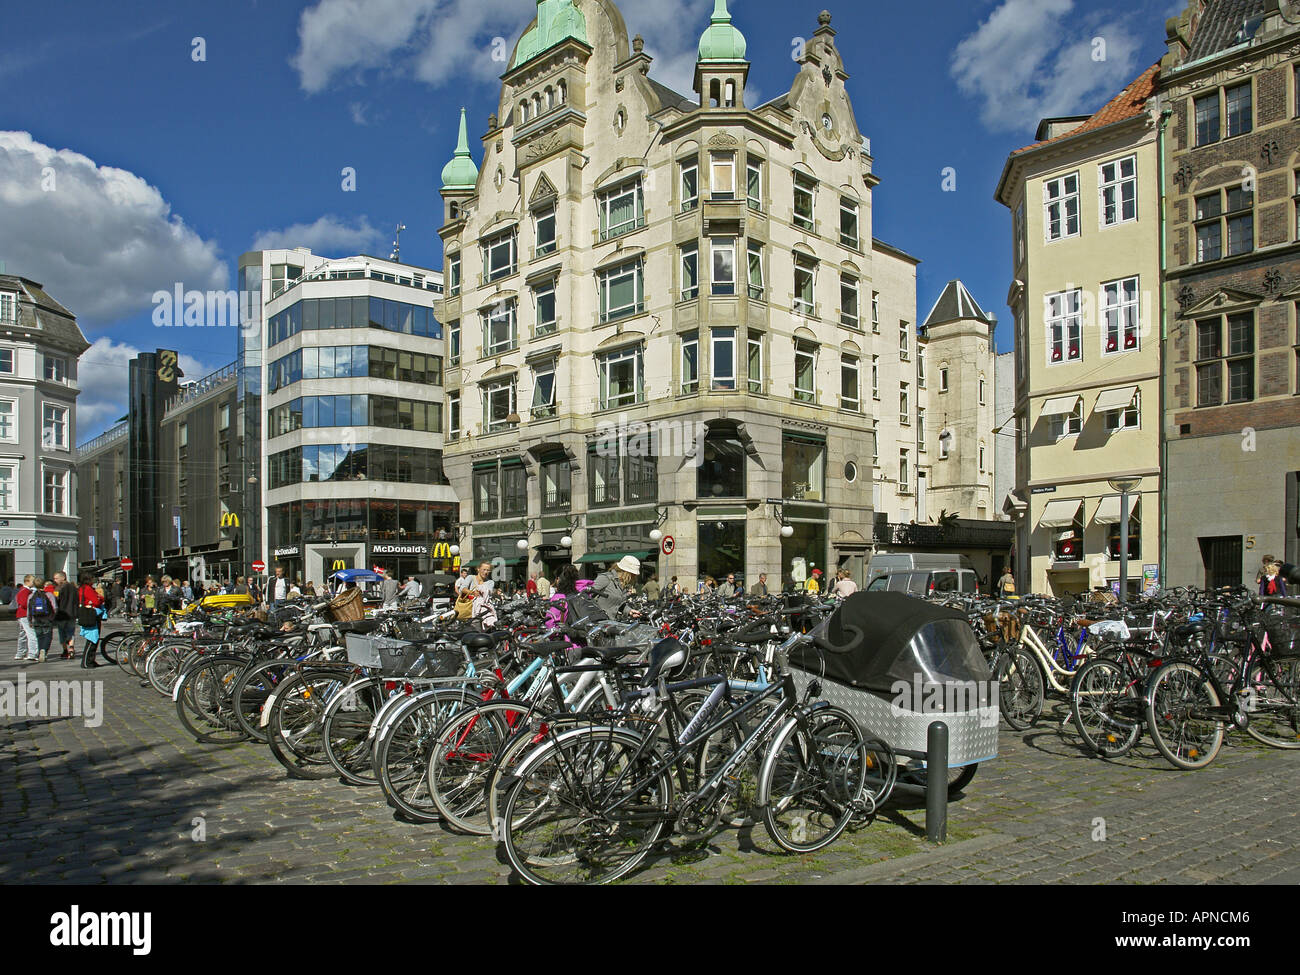 The north end of Hojbro Plads (Square) in the City of Copenhagen - Stock Image